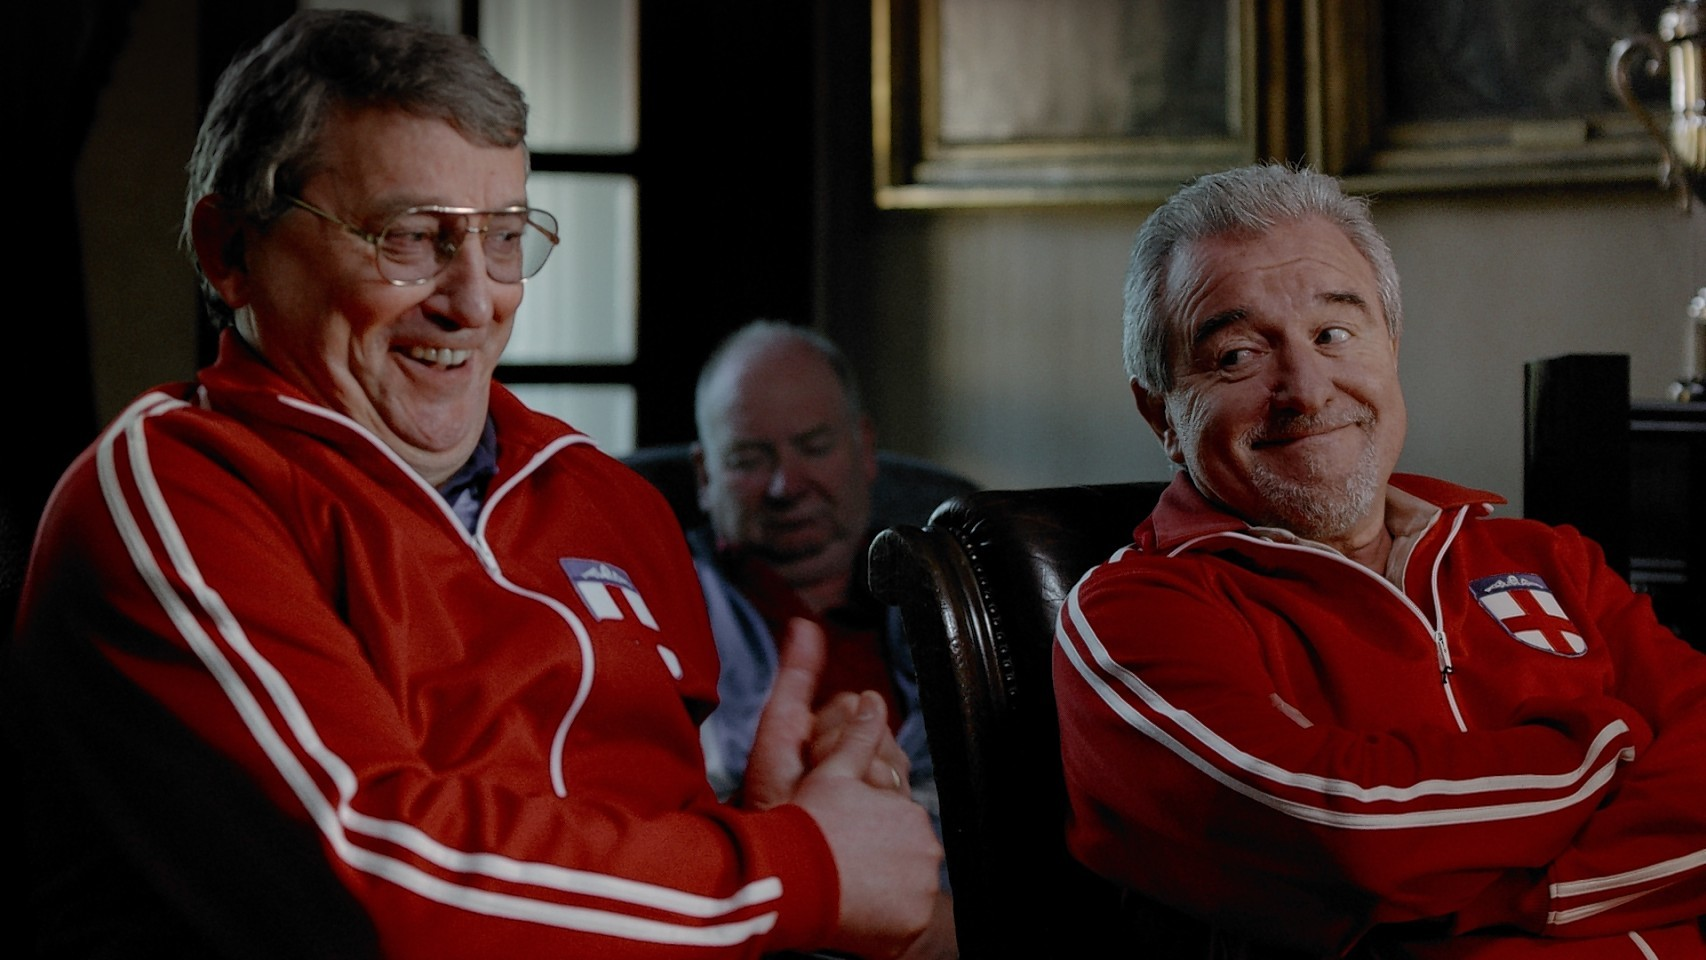 Terry Venables, right, with another former England manager, GrahamTaylor,in a 2010 TV advertisement